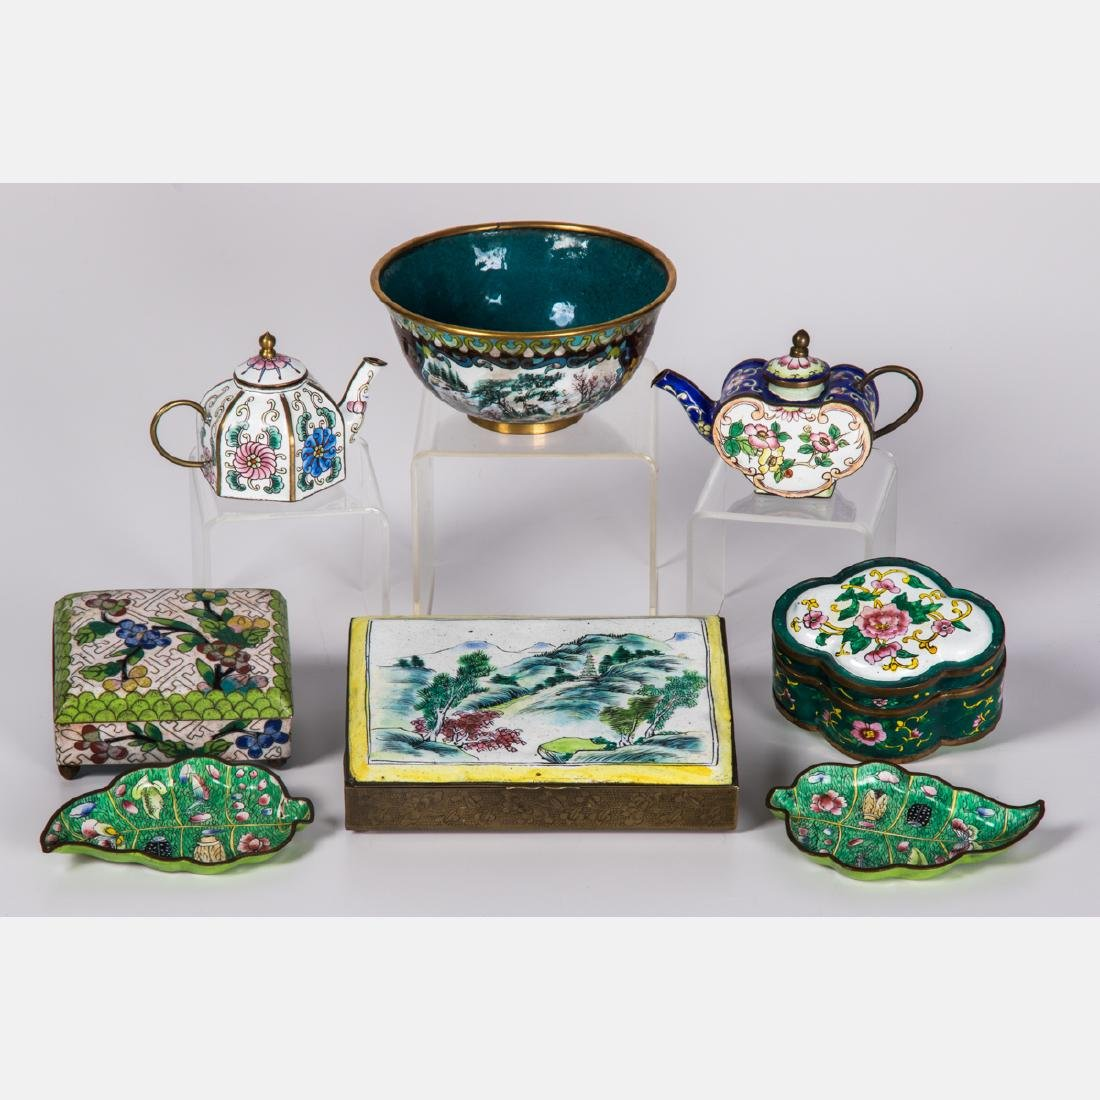 A Group of Eight Chinese Cloisonné and Enameled